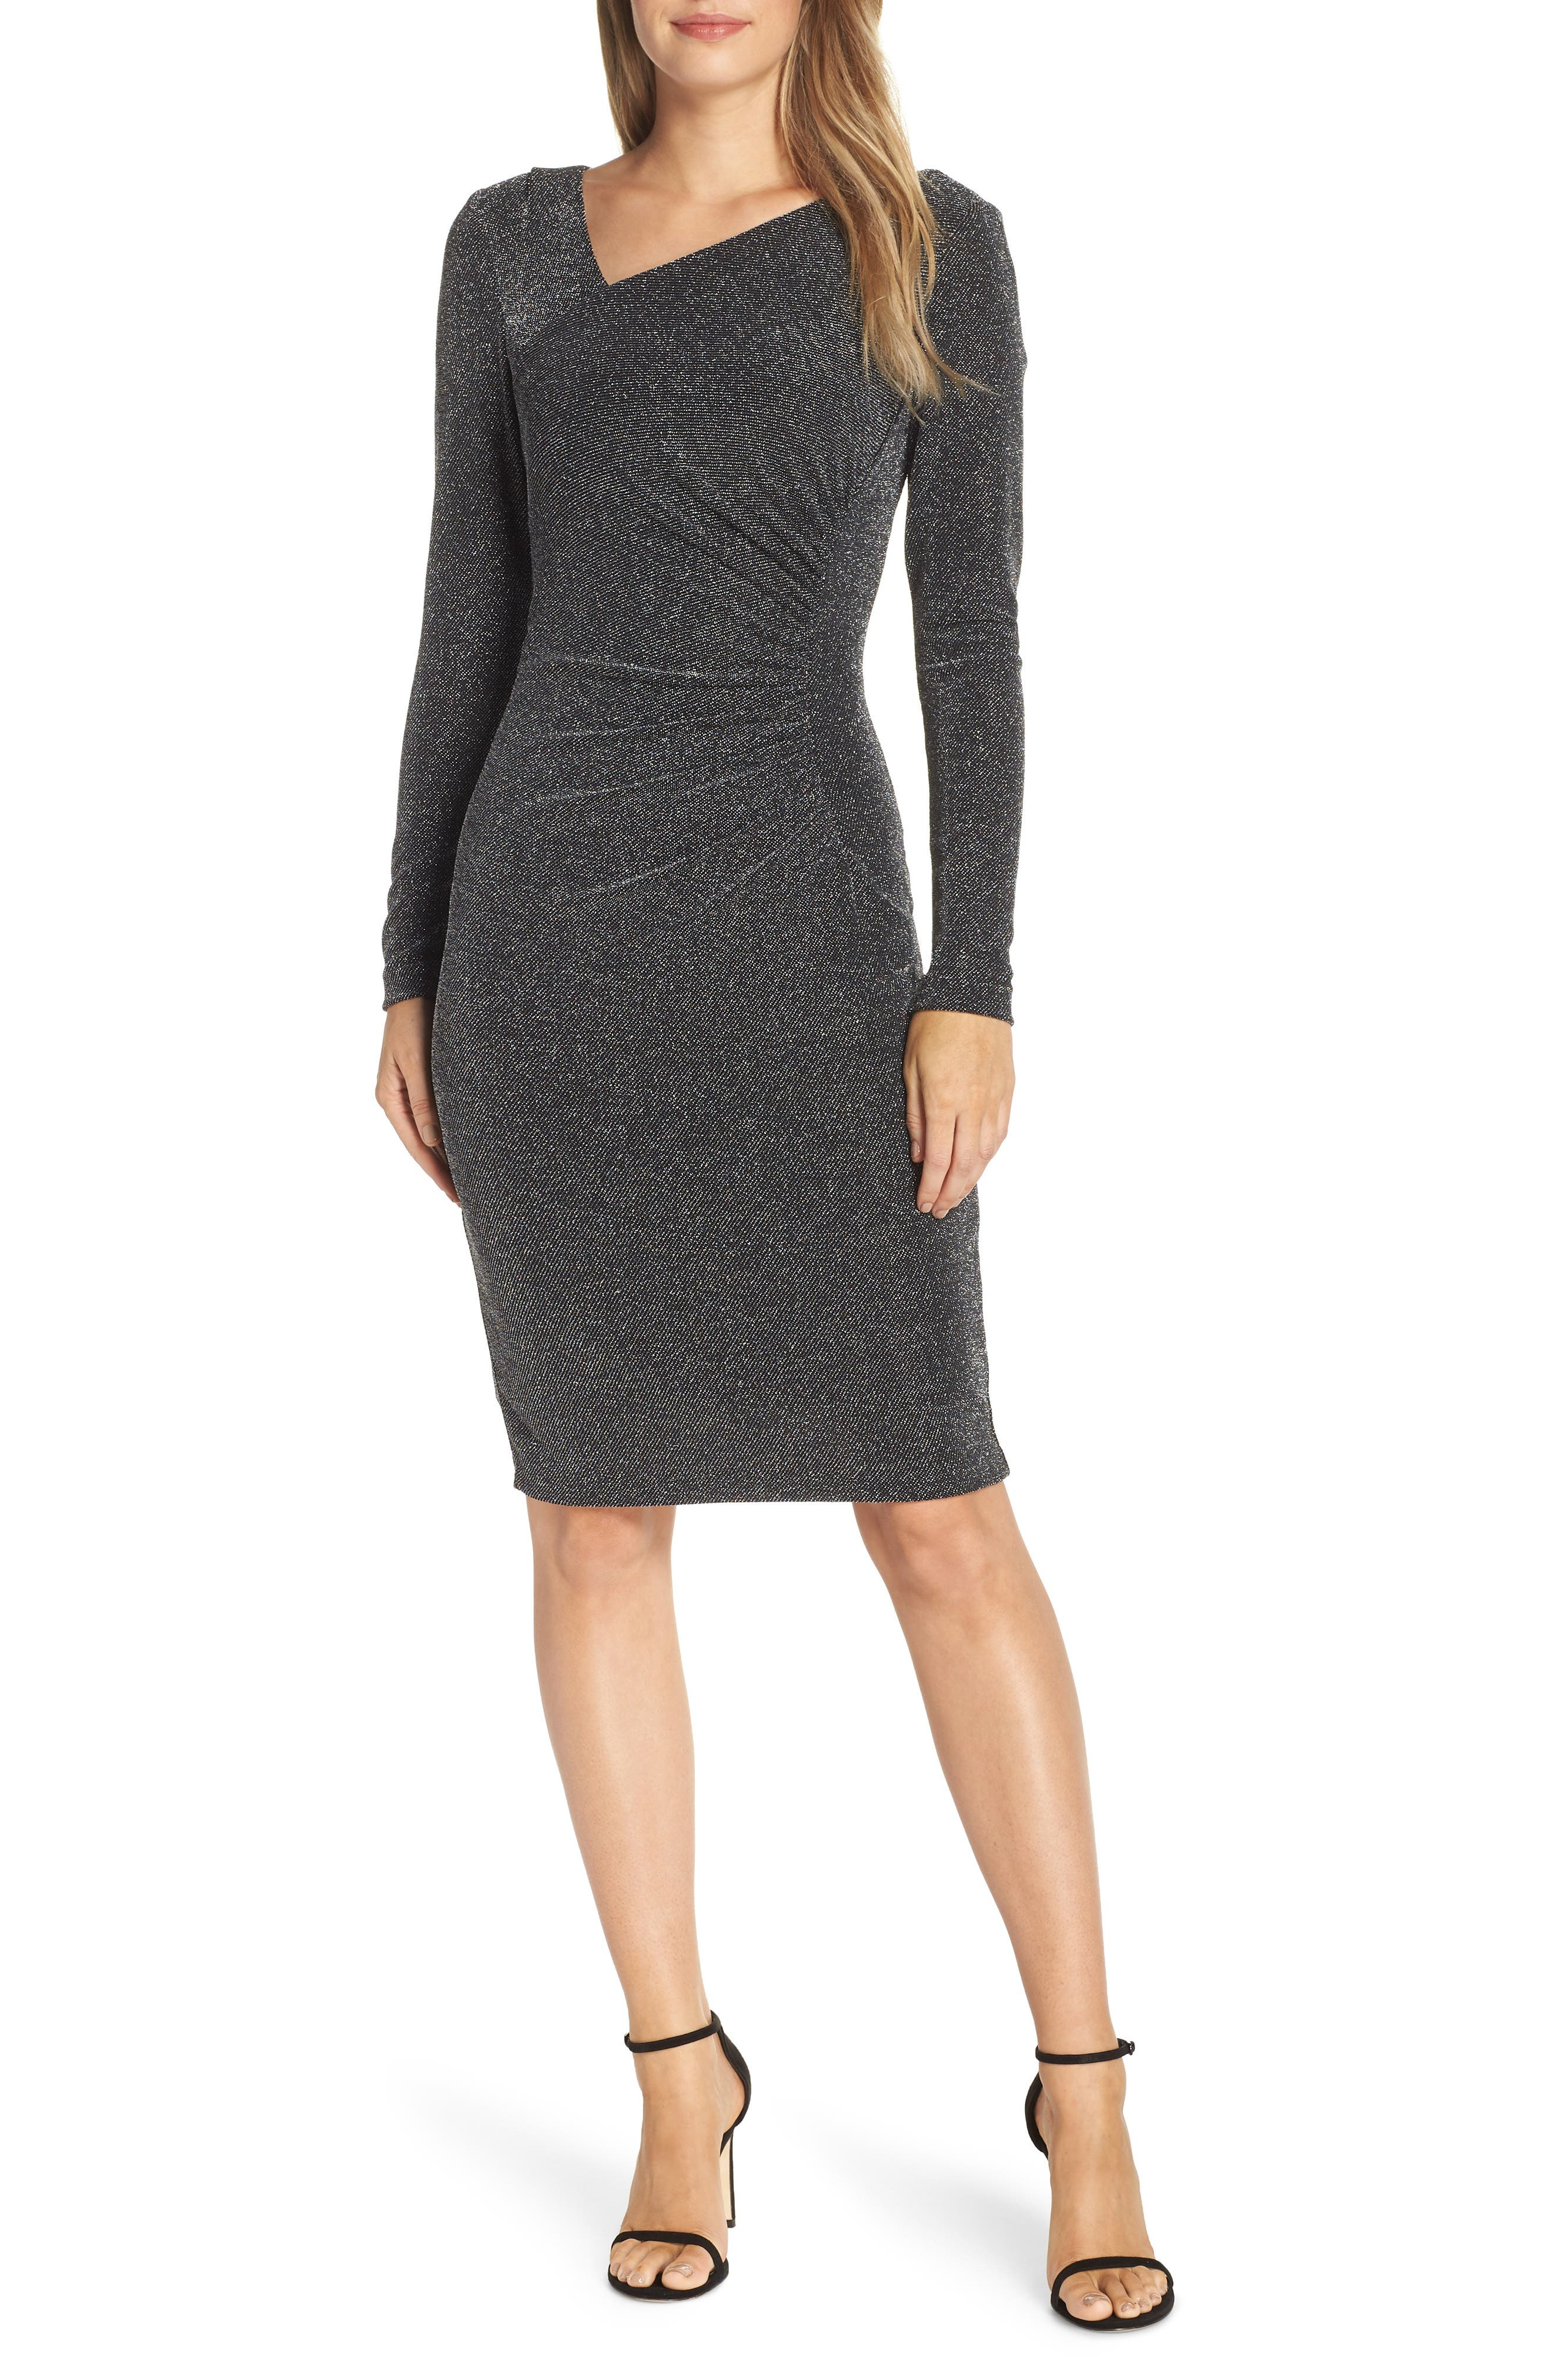 Vince Camuto Asymmetrical V-Neck Metallic Cocktail Sheath